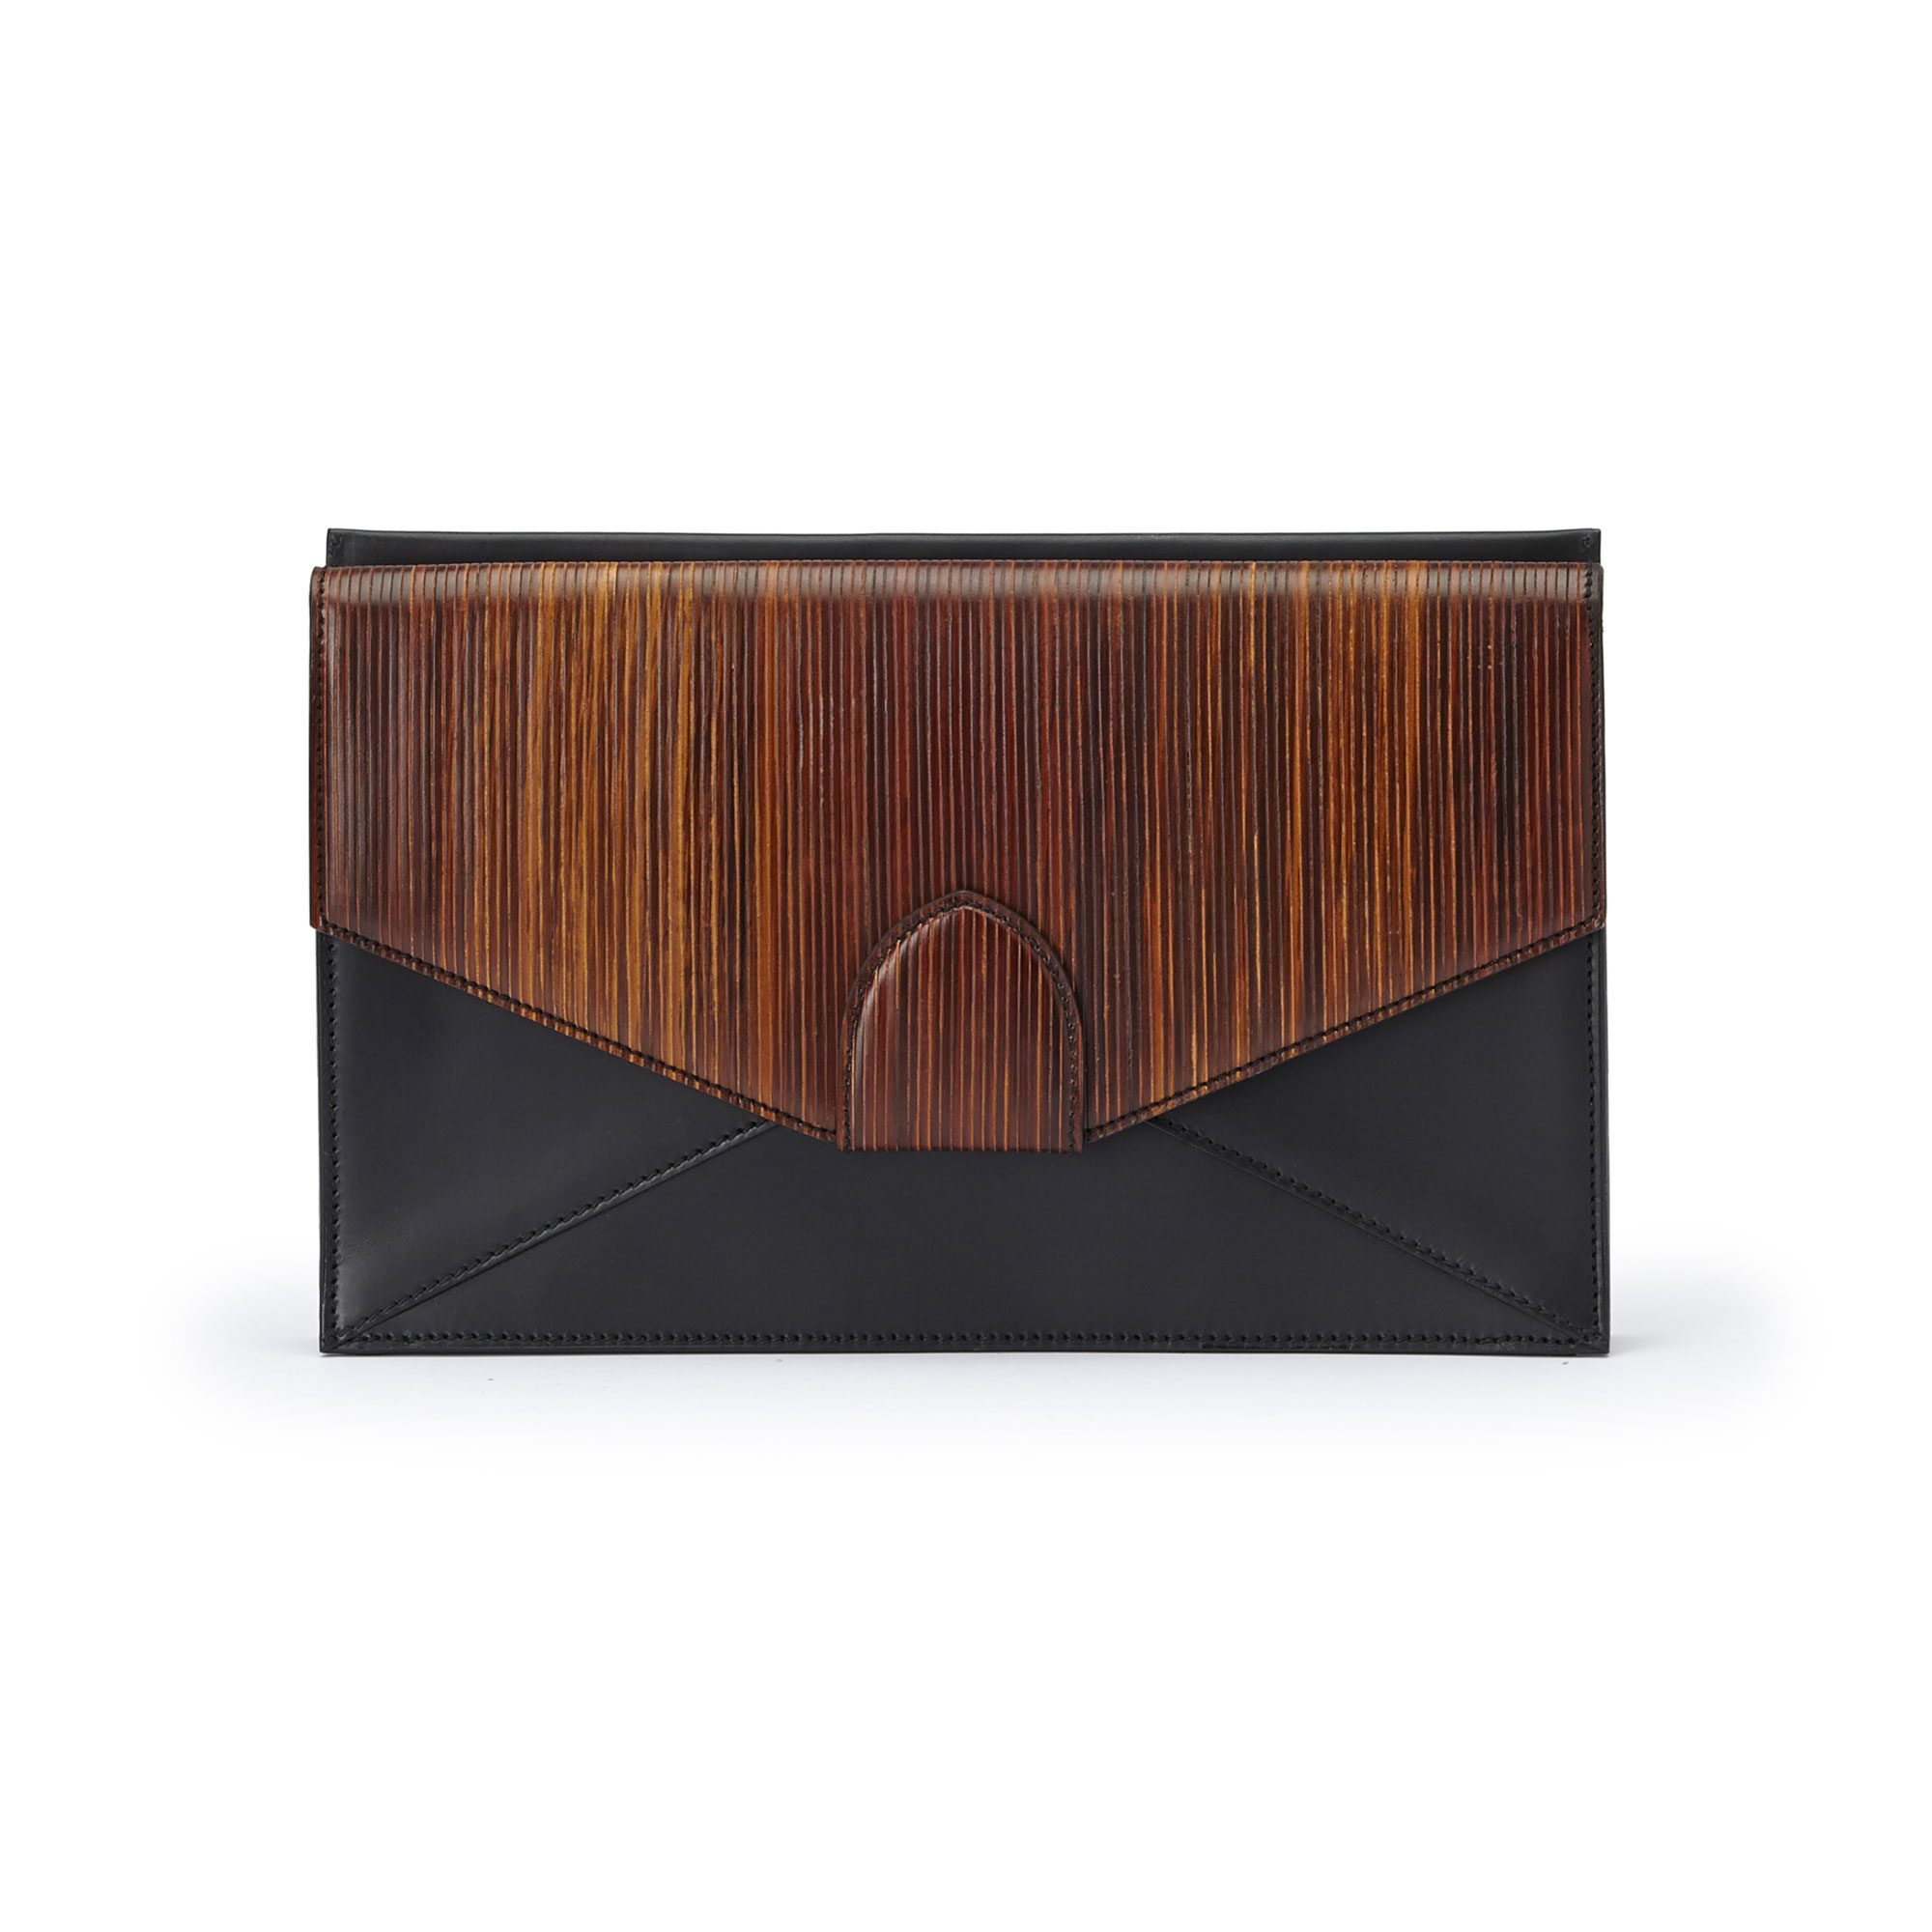 The black and brown wood leather, french calf Dafne Clutch bag by Bertoni 1949 01